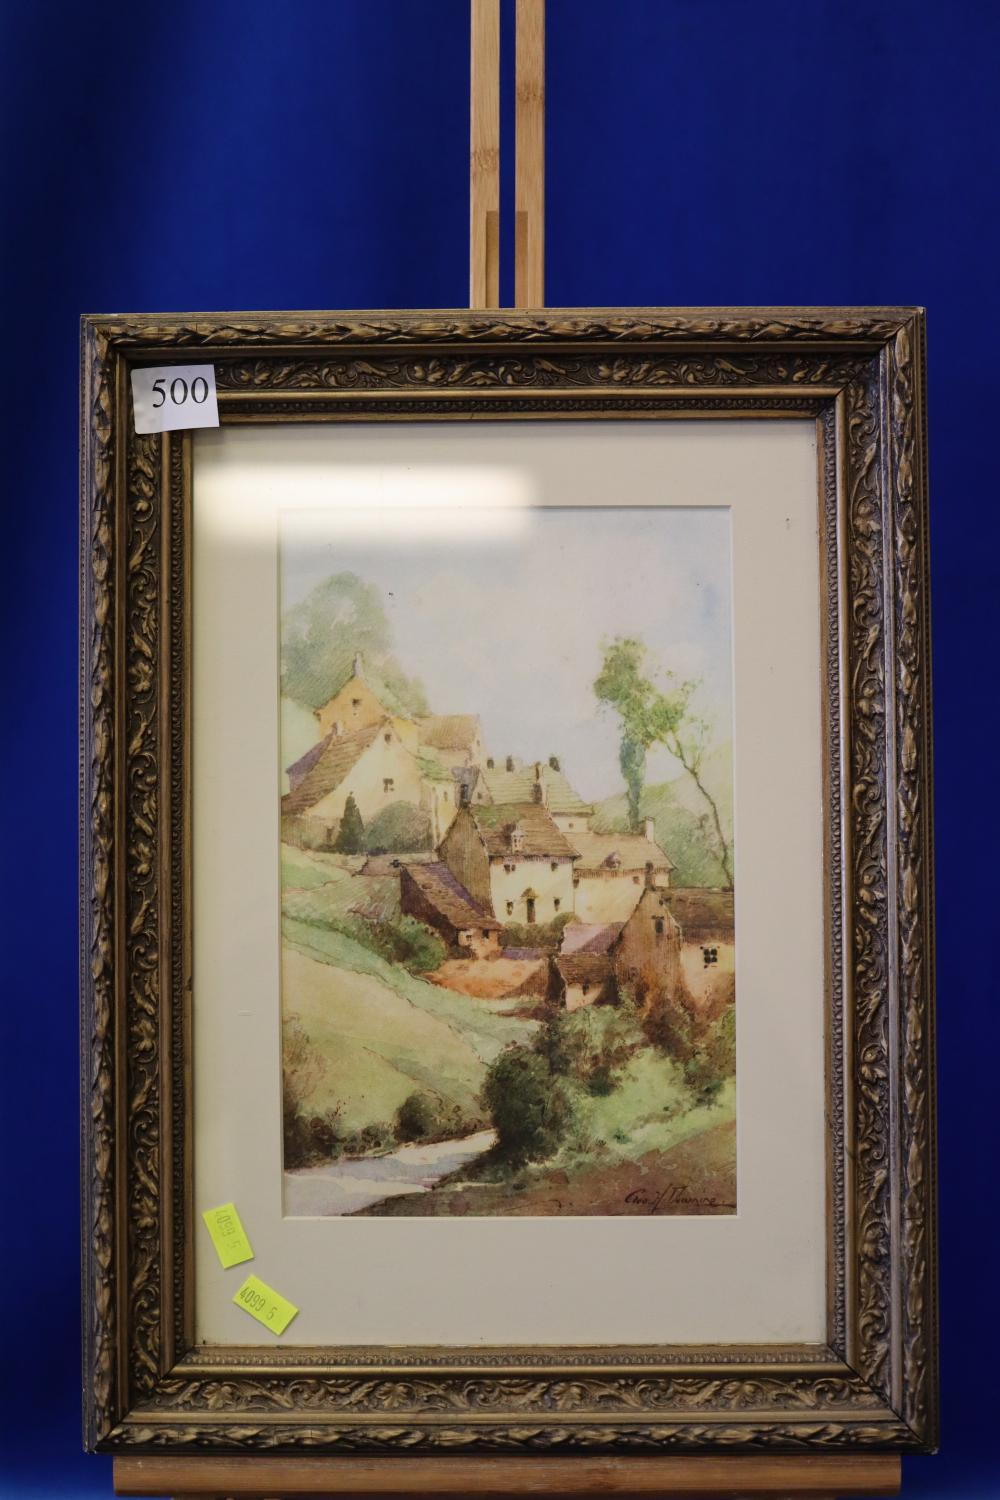 WATERCOLOUR OF ENGLISH COTTAGES BY DOWNINE